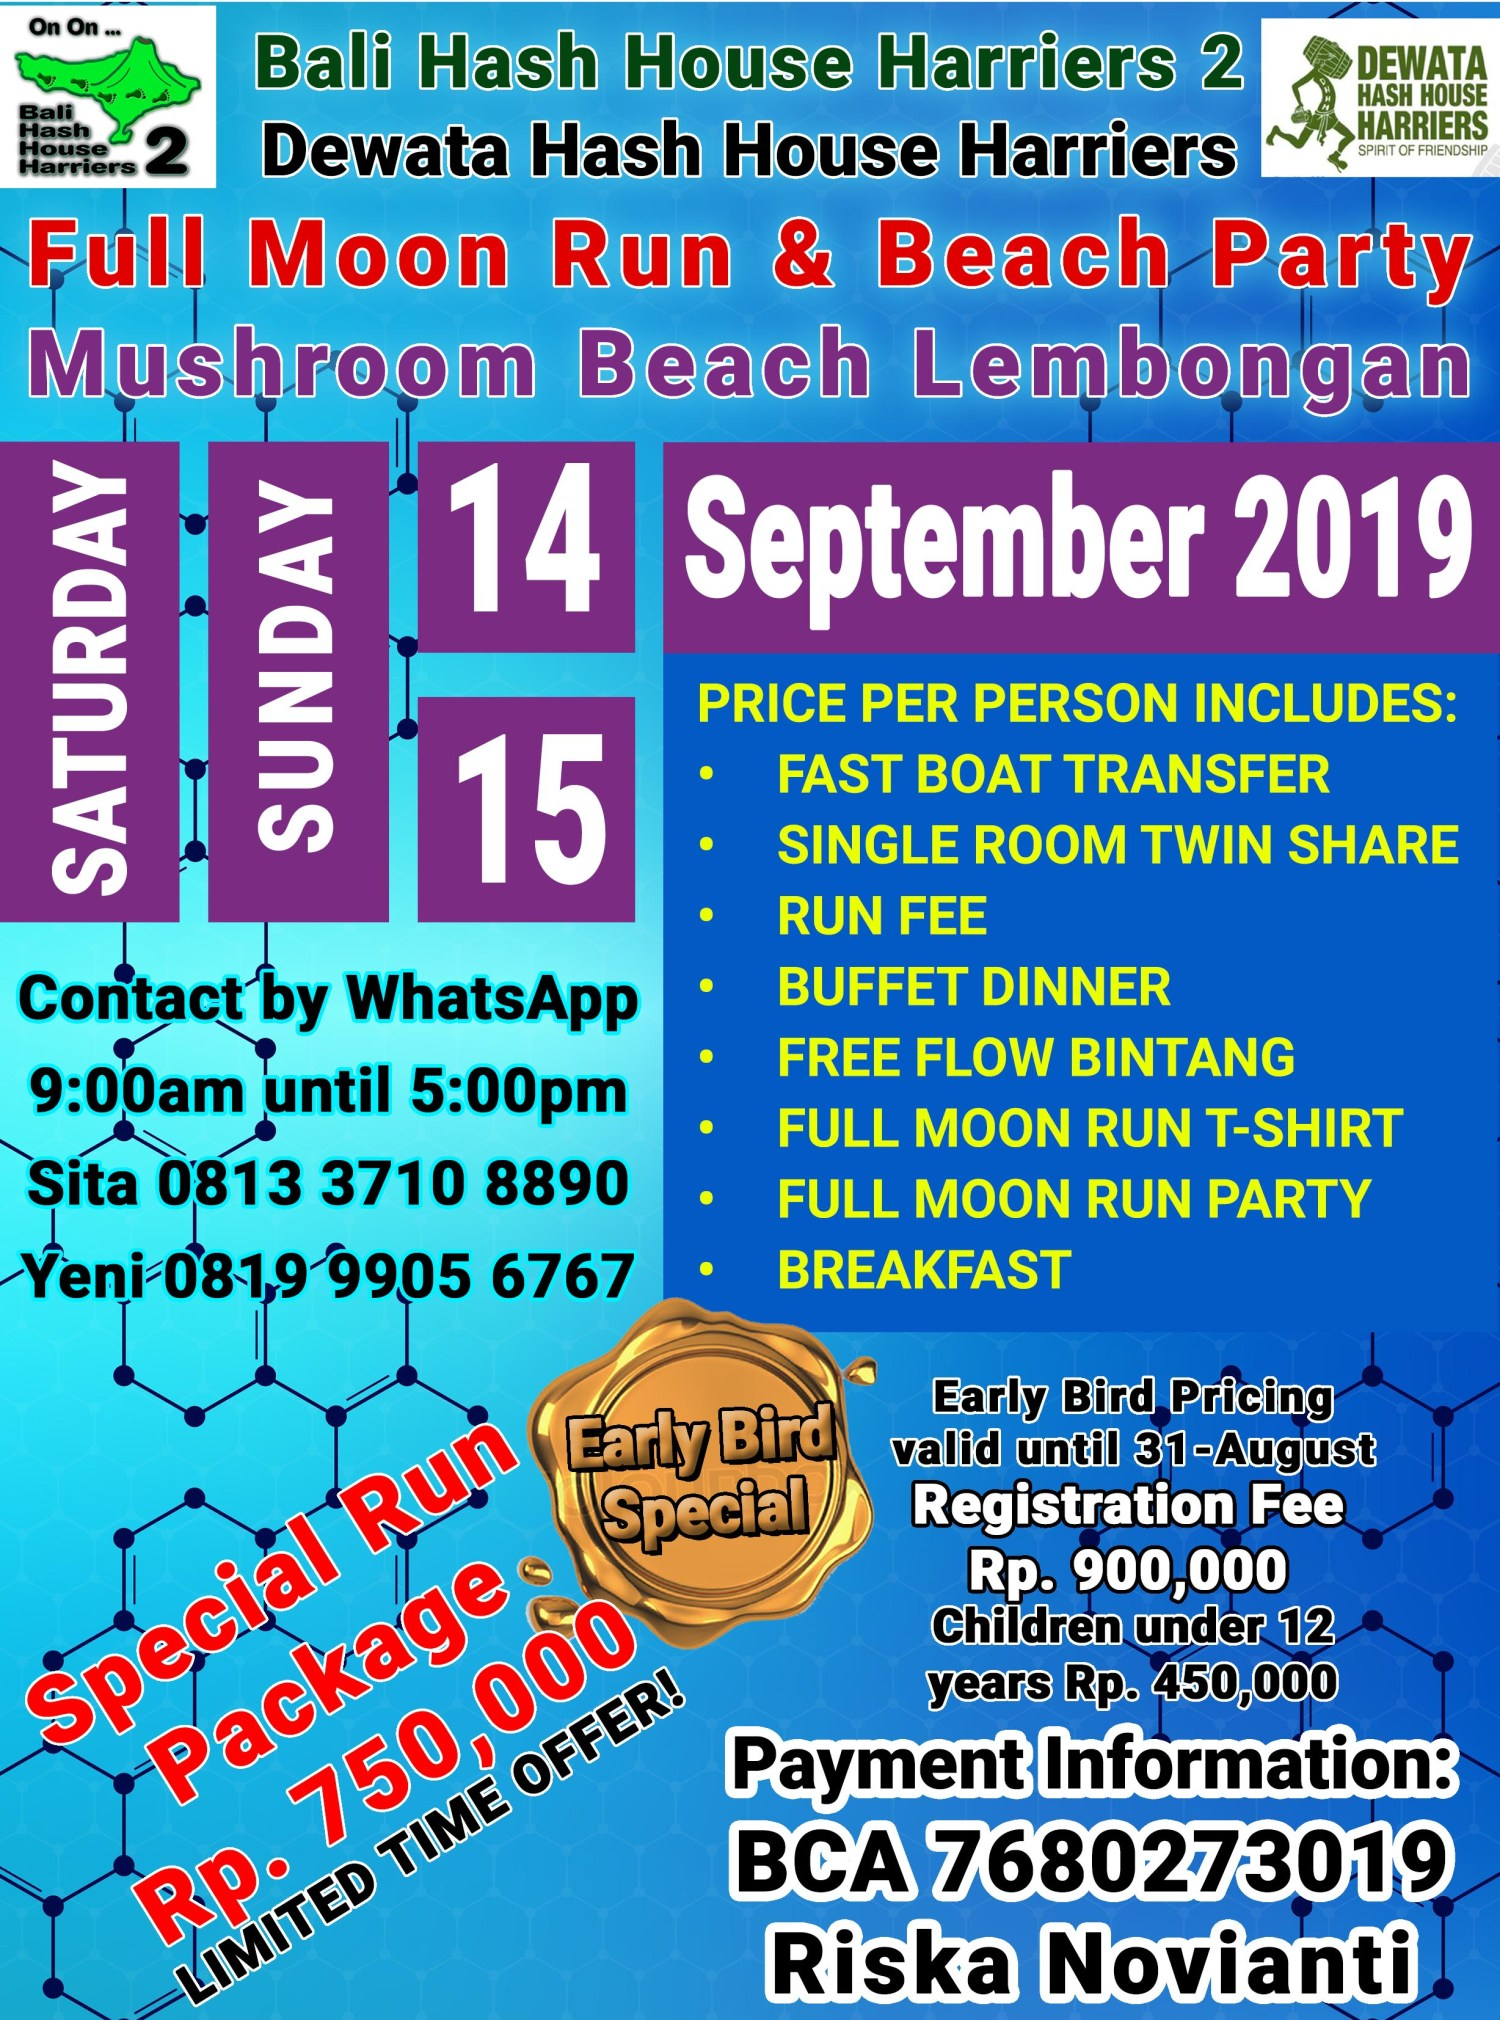 A Full Moon Run & Beach Party at Mushroom Beach